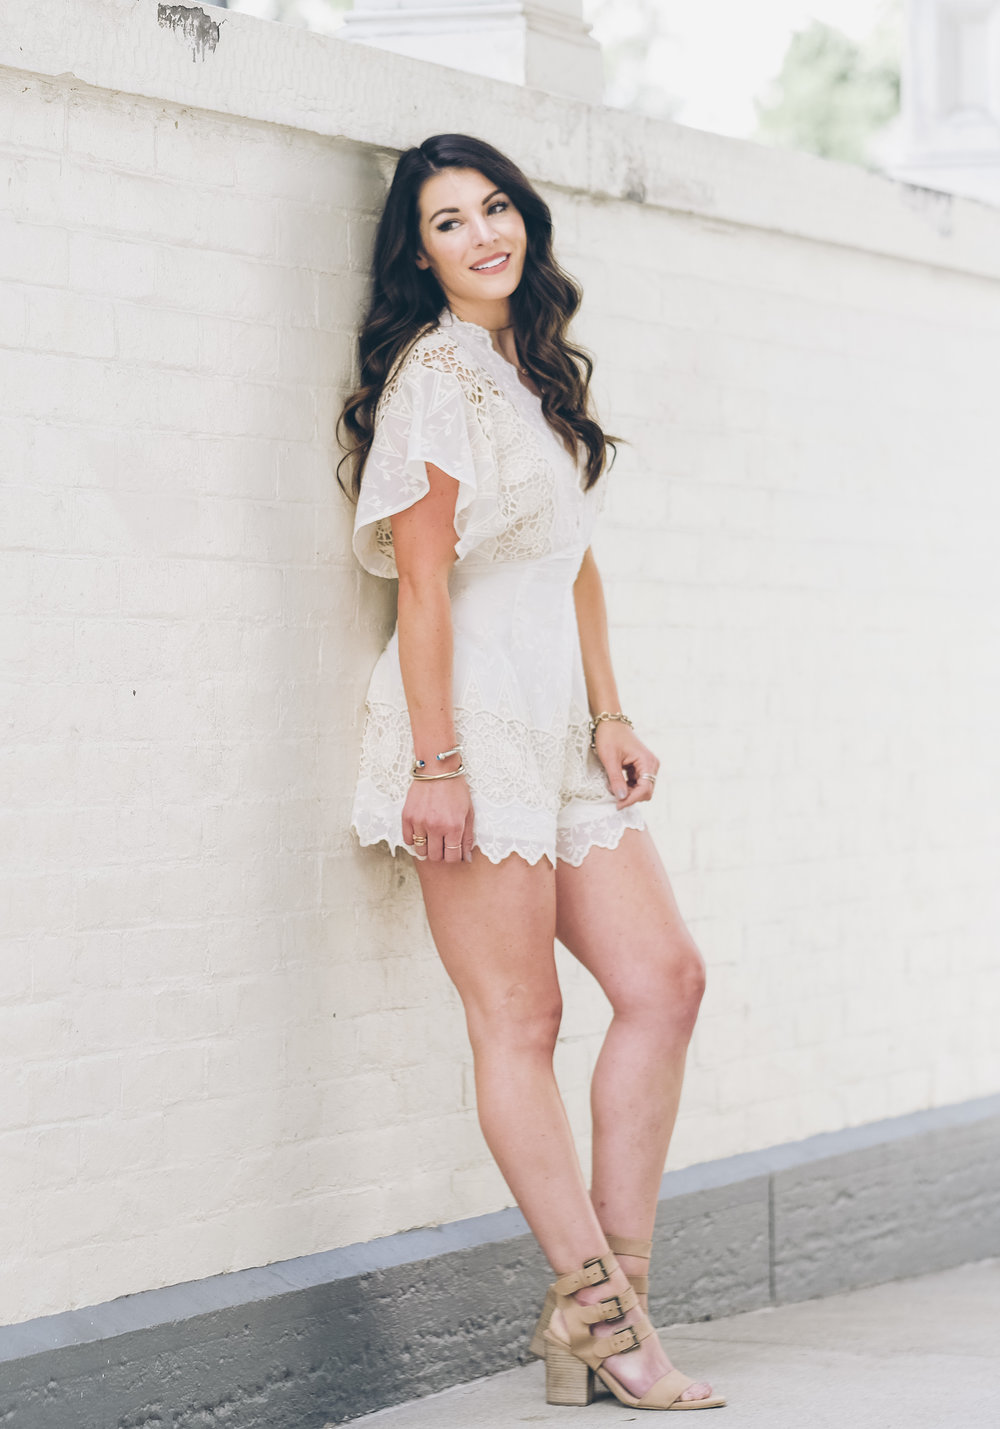 Cute affordable summer rompers, white romper for bridal shower or rehearsal dinner.